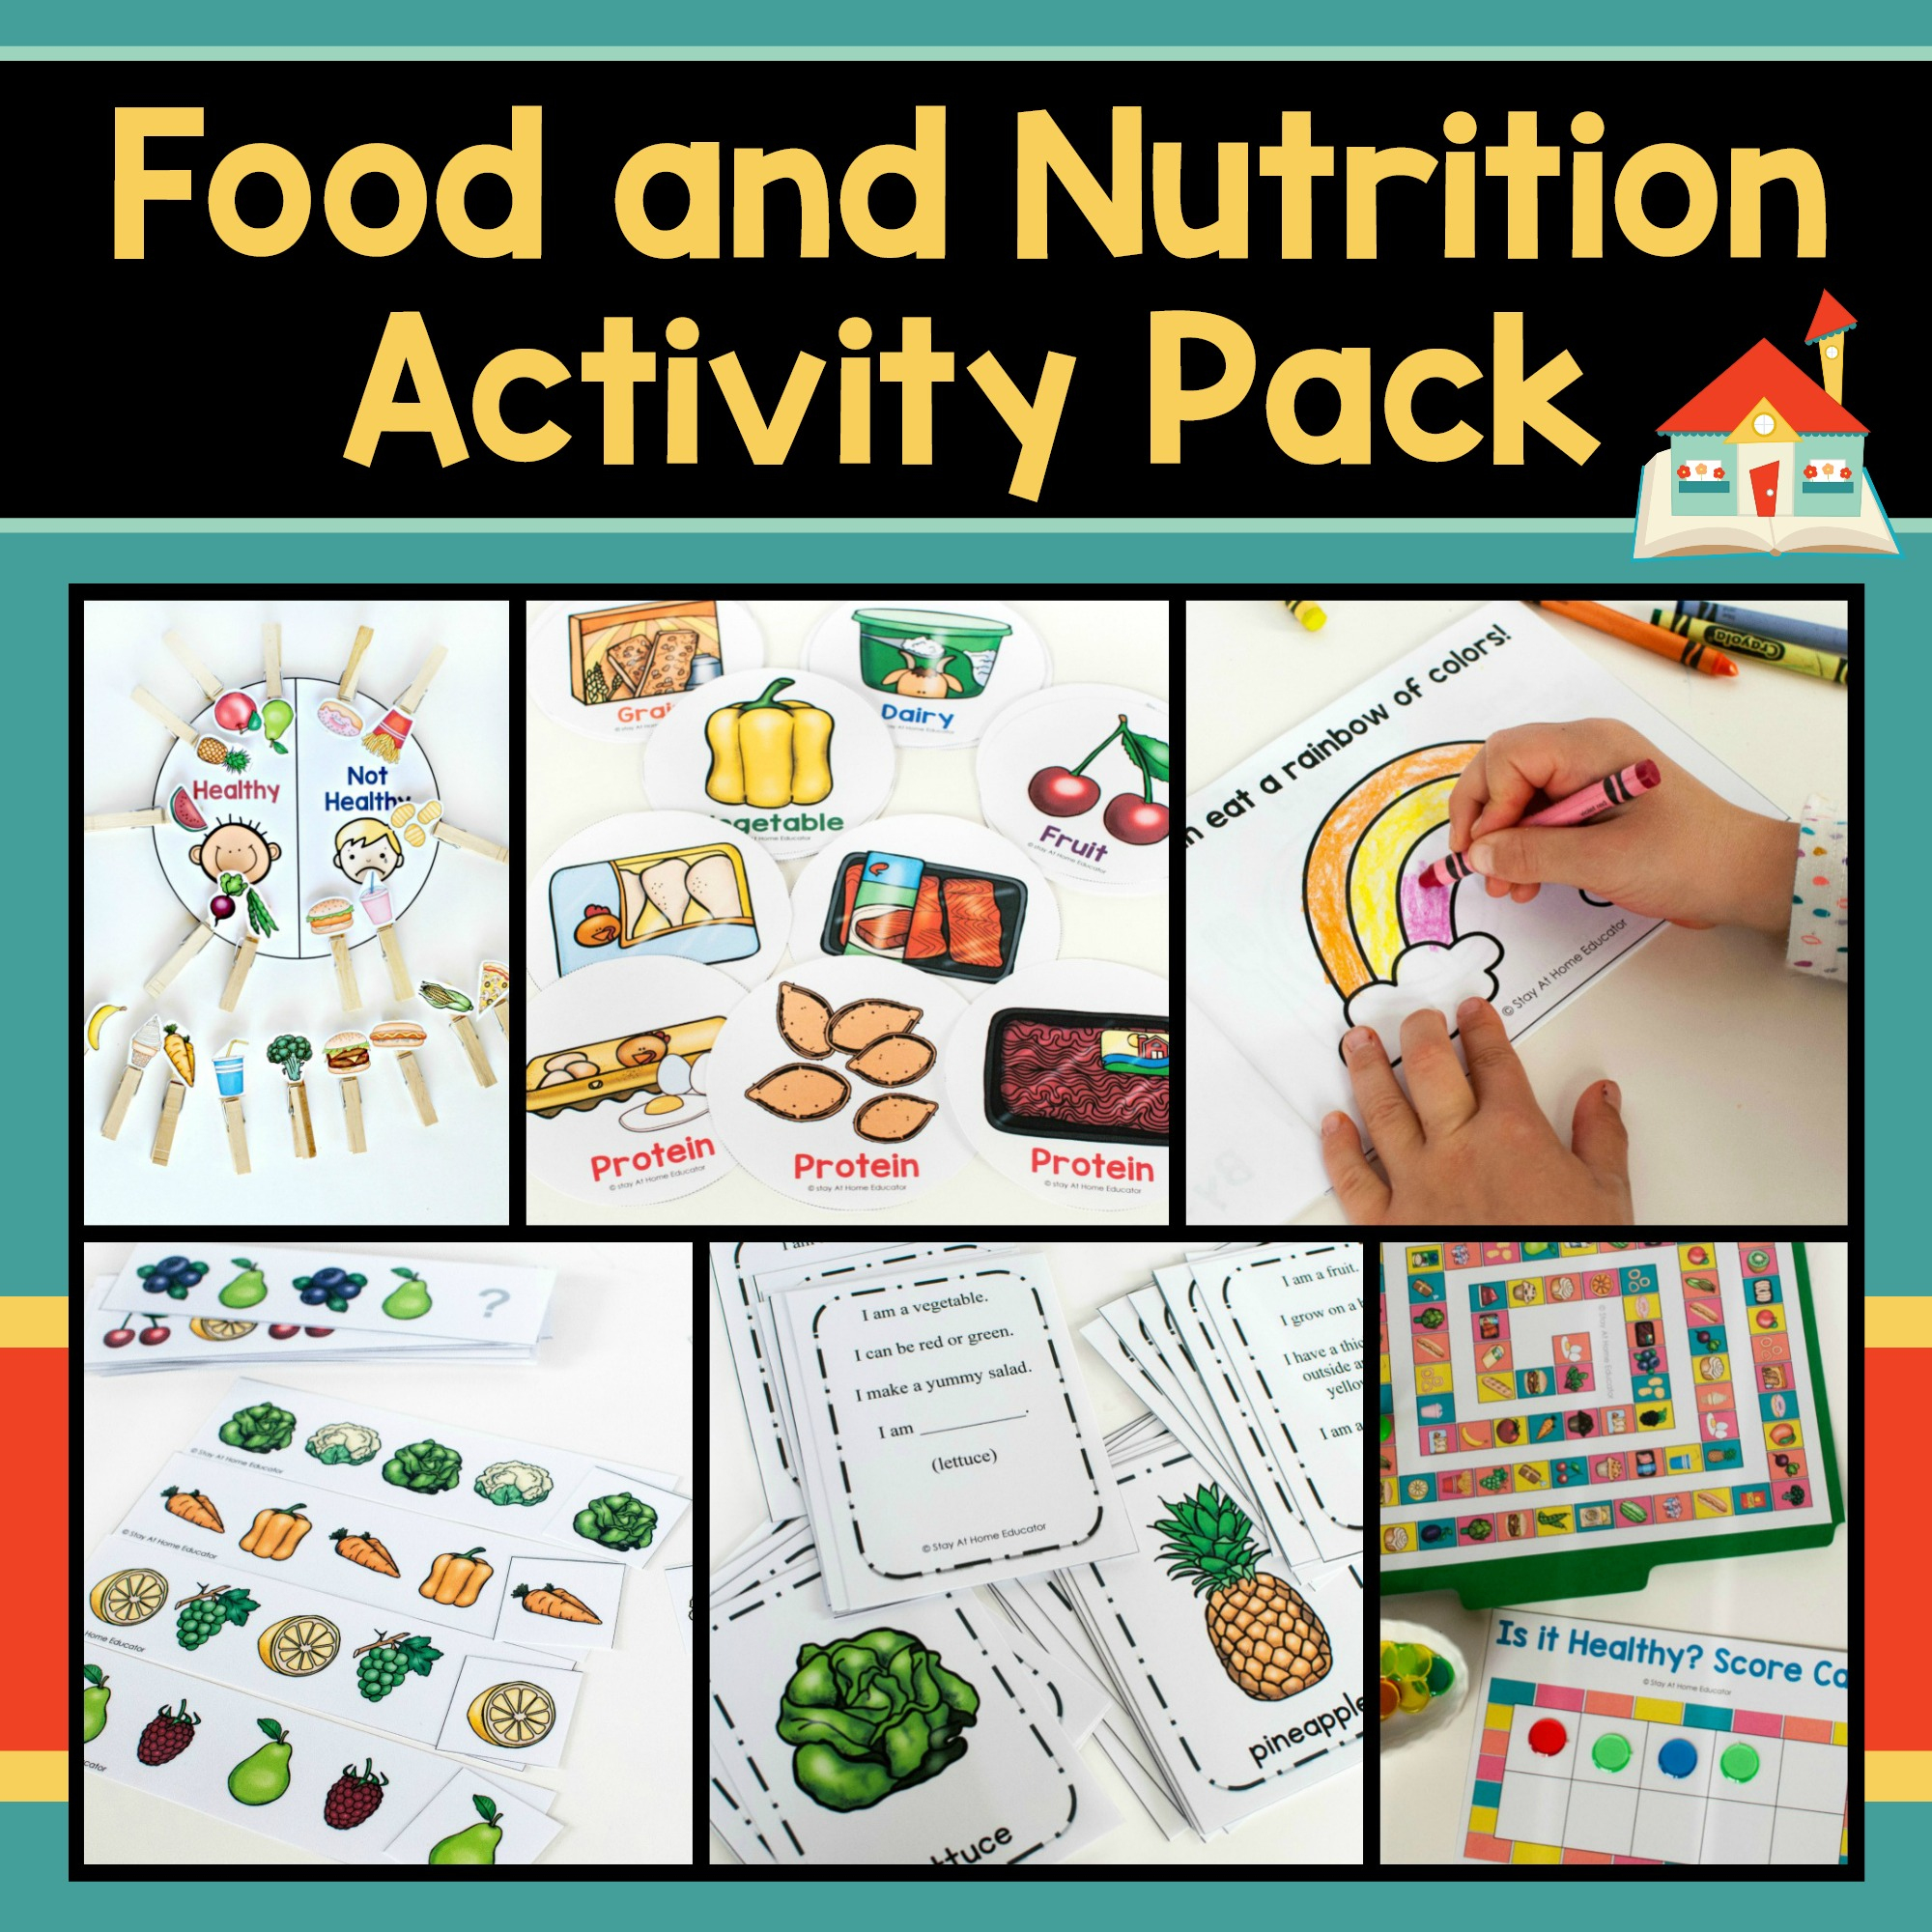 6 Printable Food And Nutrition Activities For Preschoolers - Printable Nutrition Puzzles For Adults